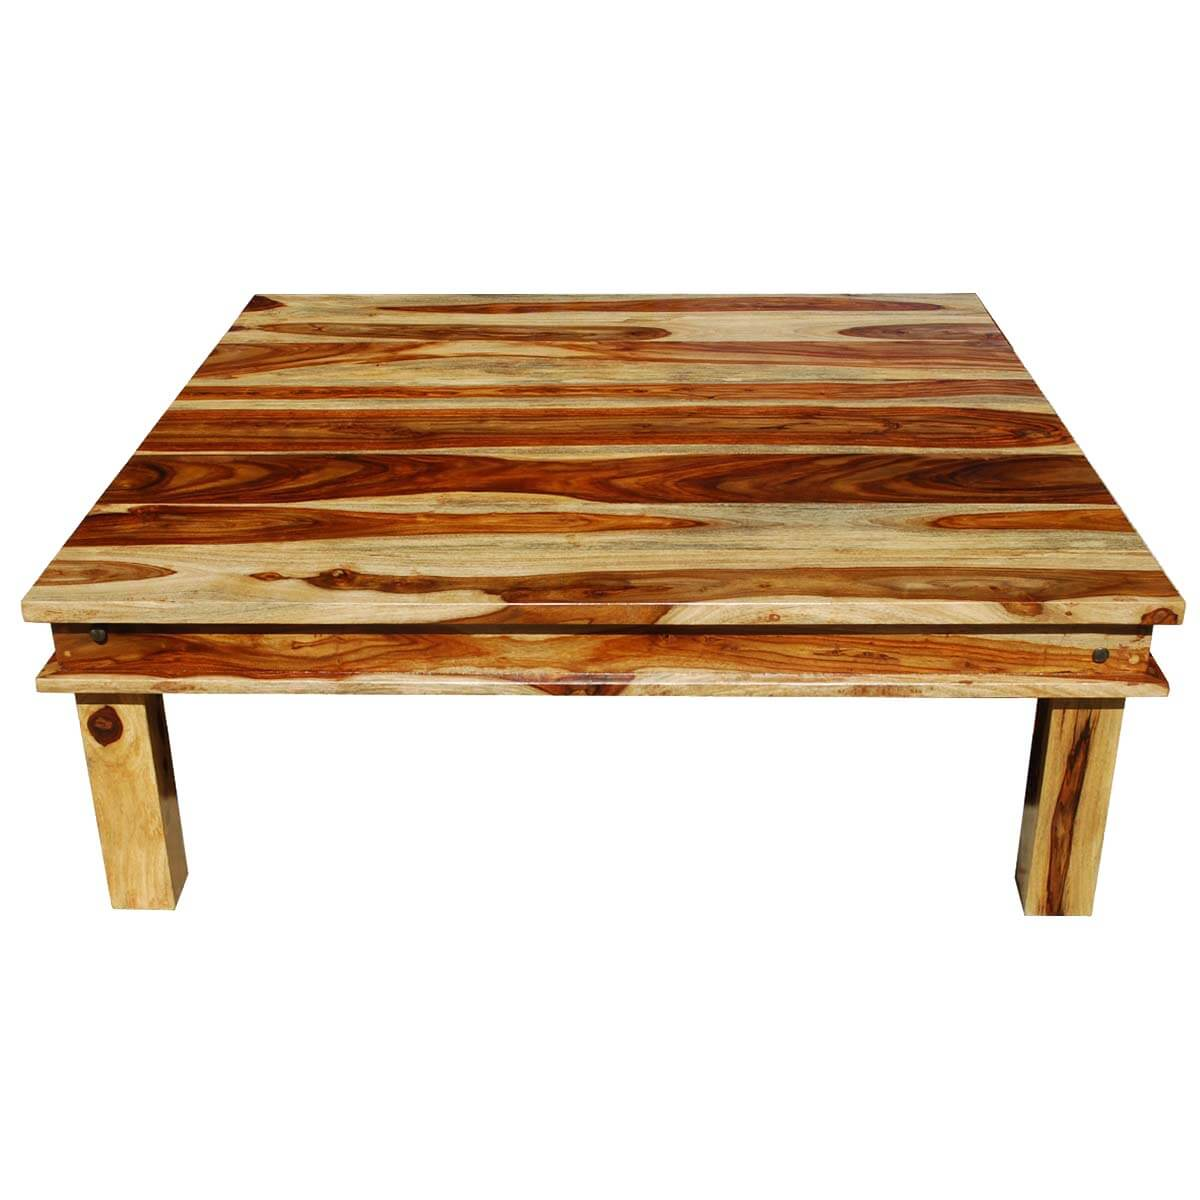 Large square wood rustic coffee table for Wooden coffee tables images